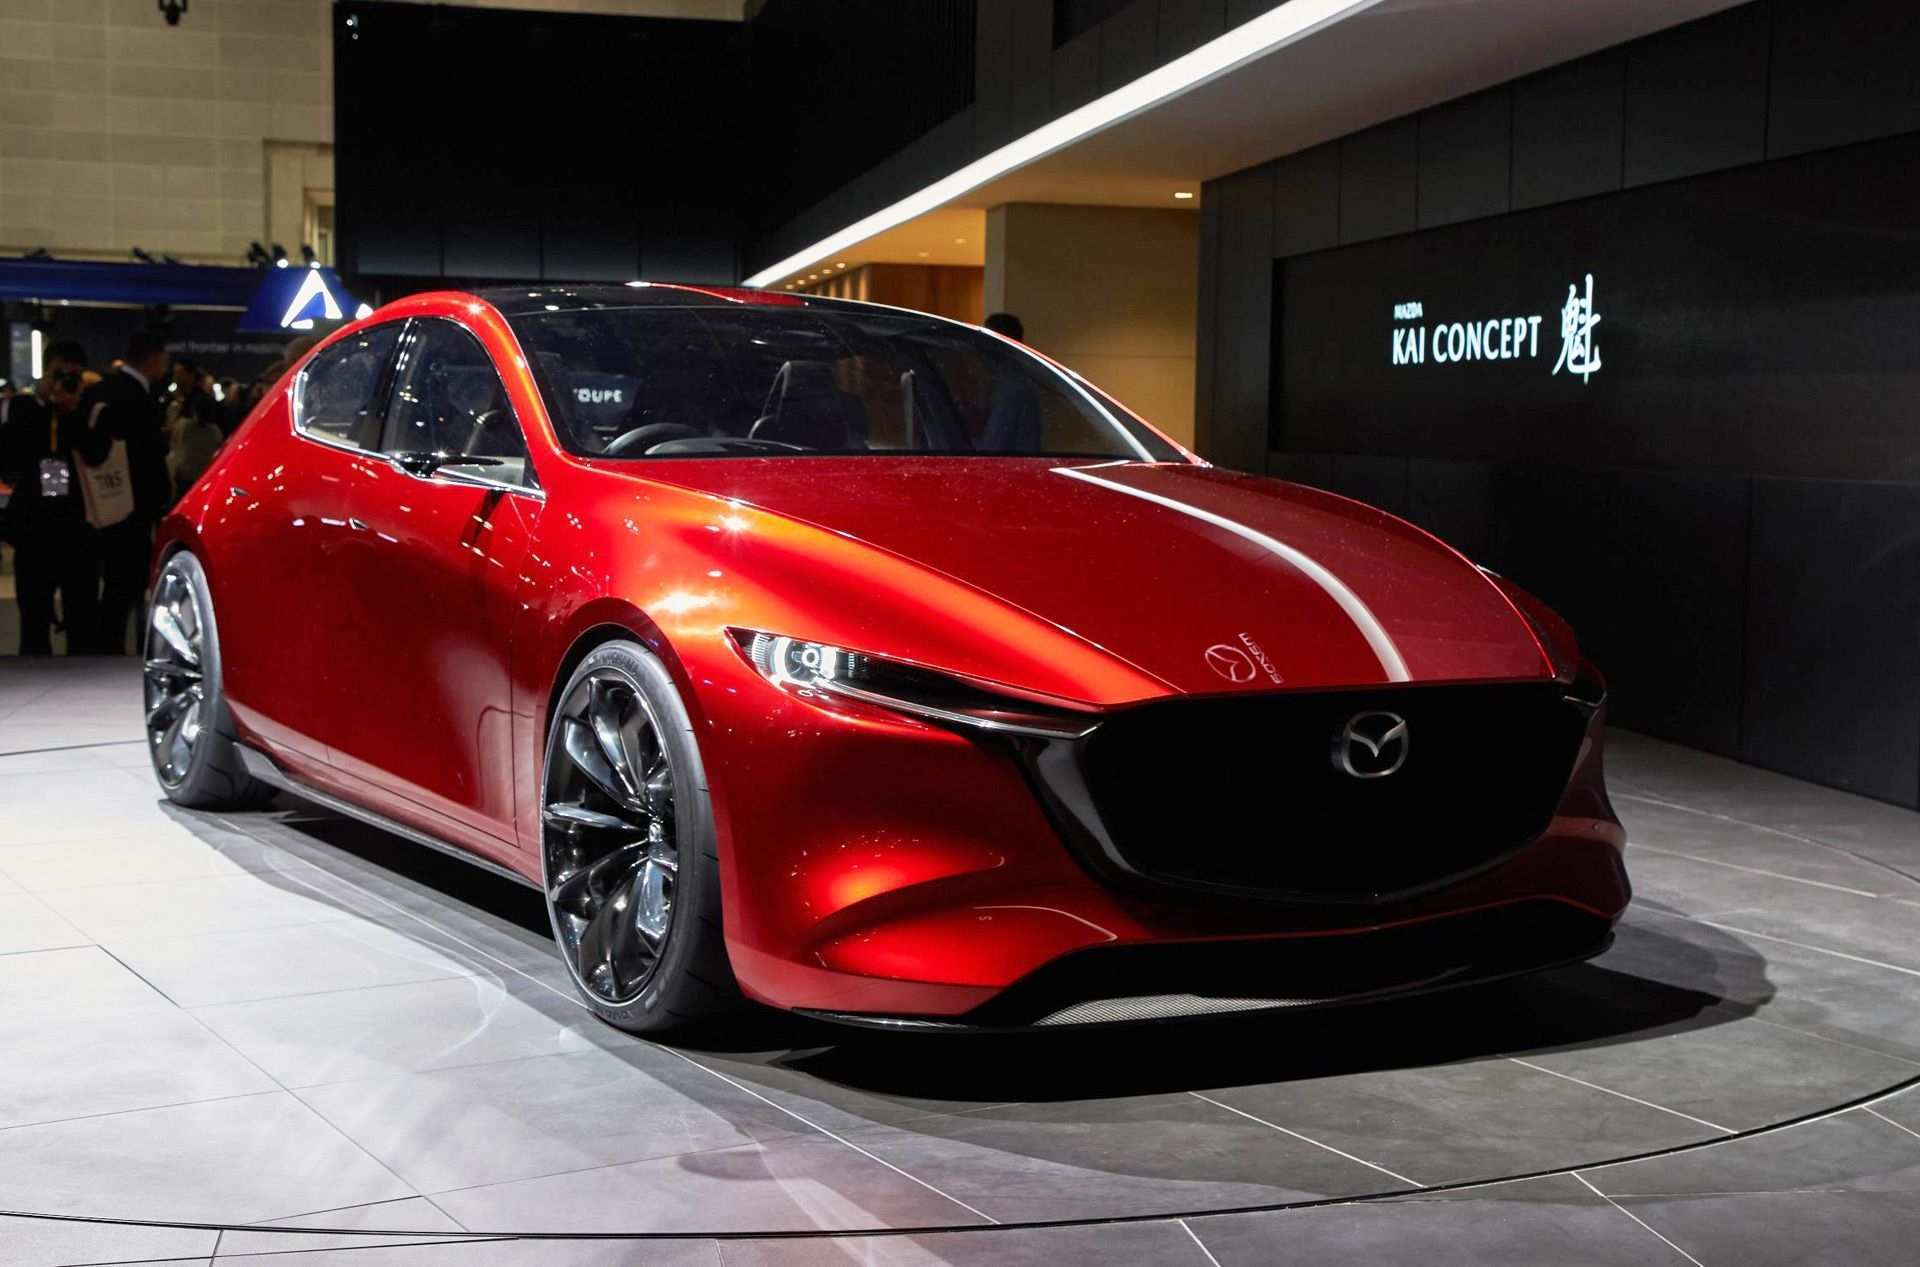 12 Great Mazdas New Engine For 2019 Review Specs And Release Date Exterior with Mazdas New Engine For 2019 Review Specs And Release Date